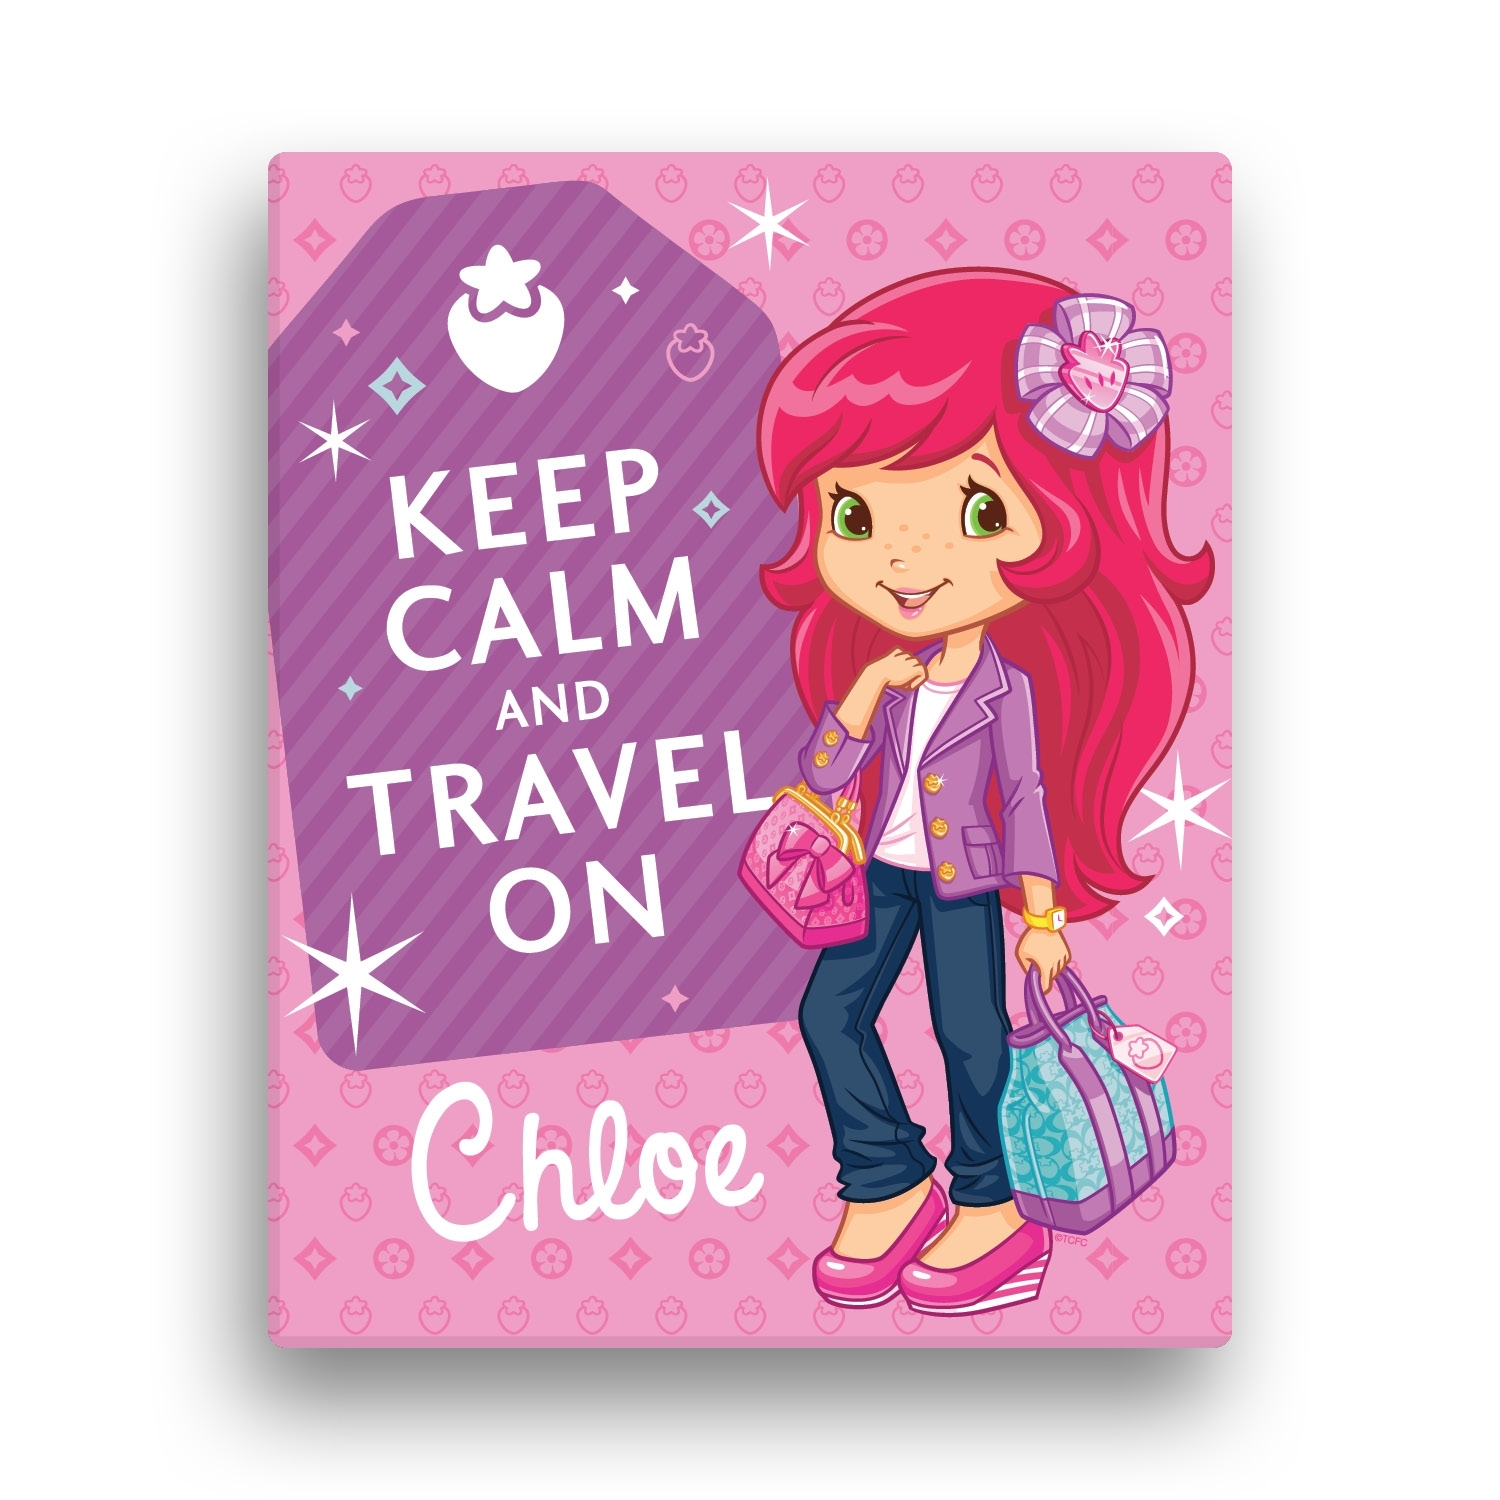 Strawberry Shortcake Keep Calm 16 X 20 Canvas Wall Art | Tv's Toy Box Within Newest Keep Calm Canvas Wall Art (View 7 of 15)